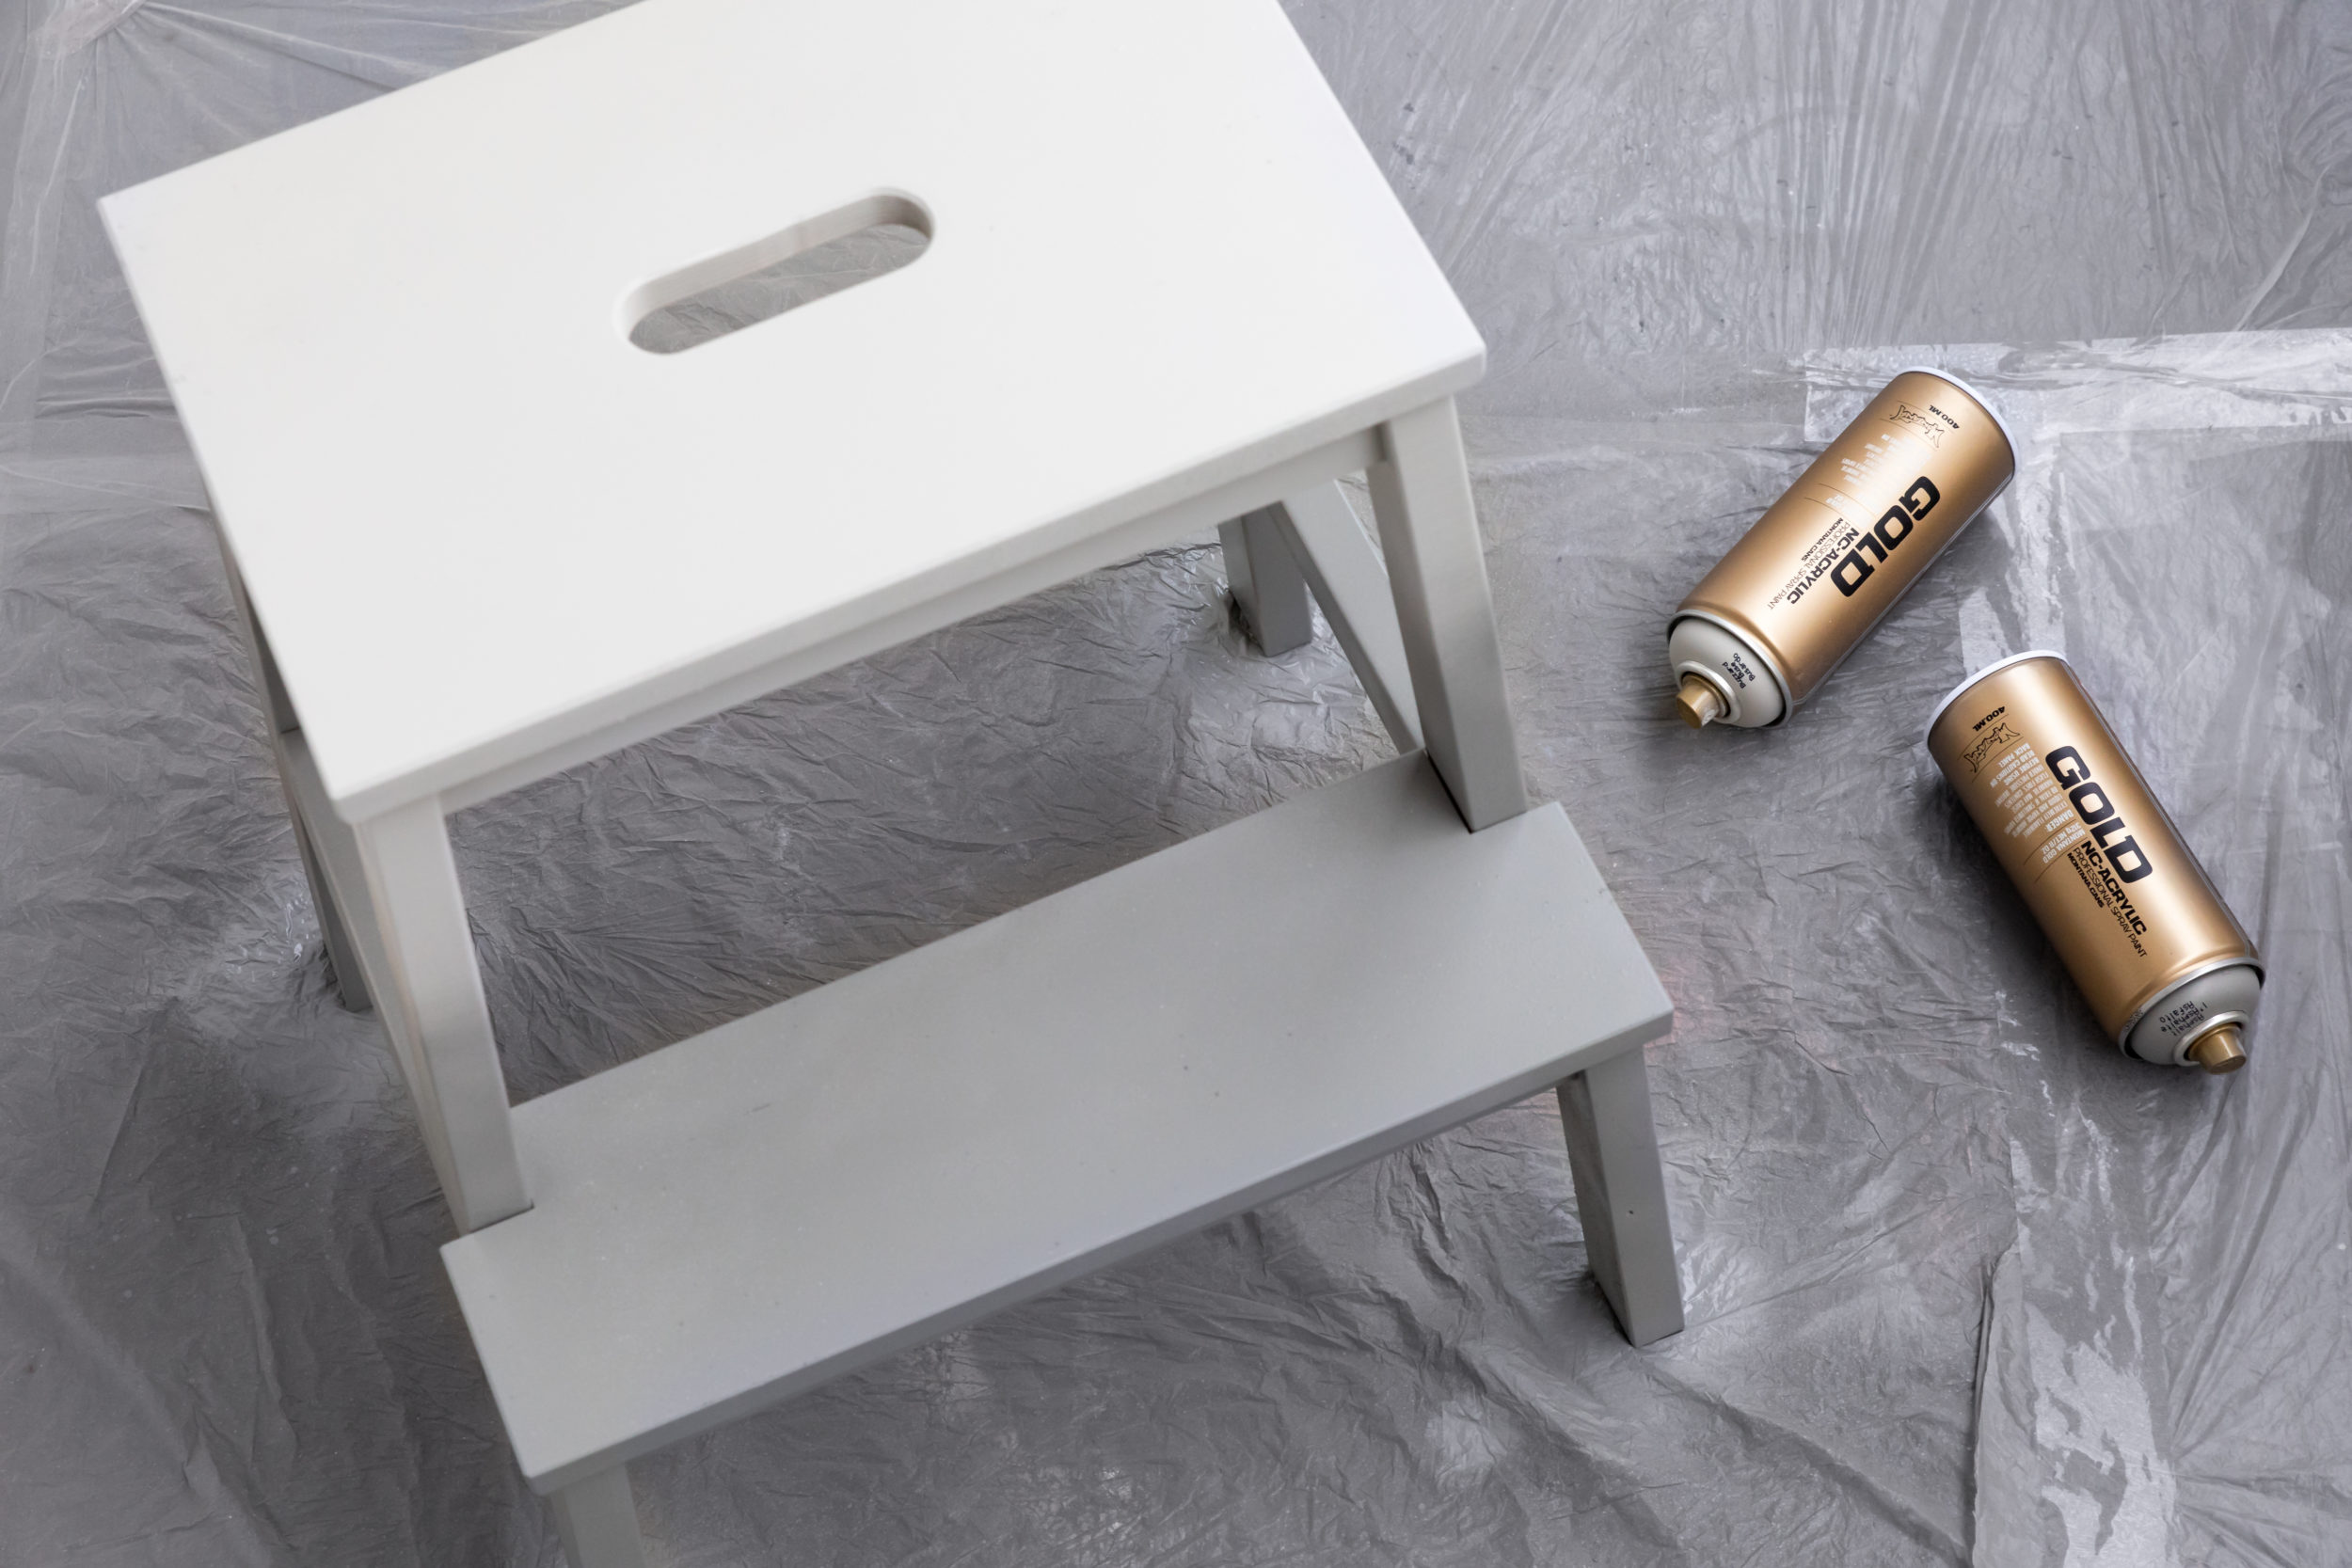 Decorative Ombre Stools – Turning Plain Wood into Faded Goodness